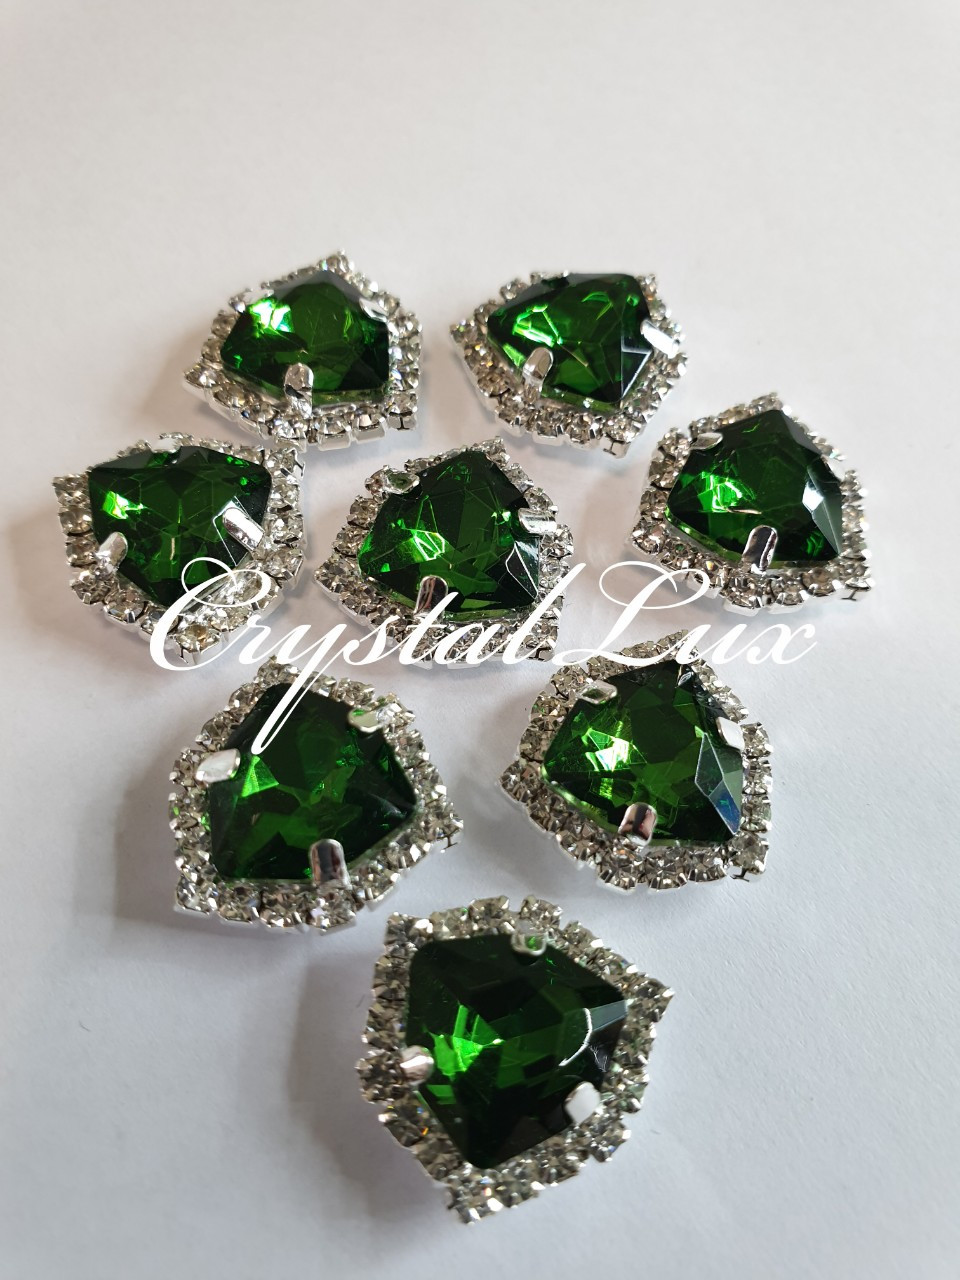 Triangle 16*16mm Emerald в цапах